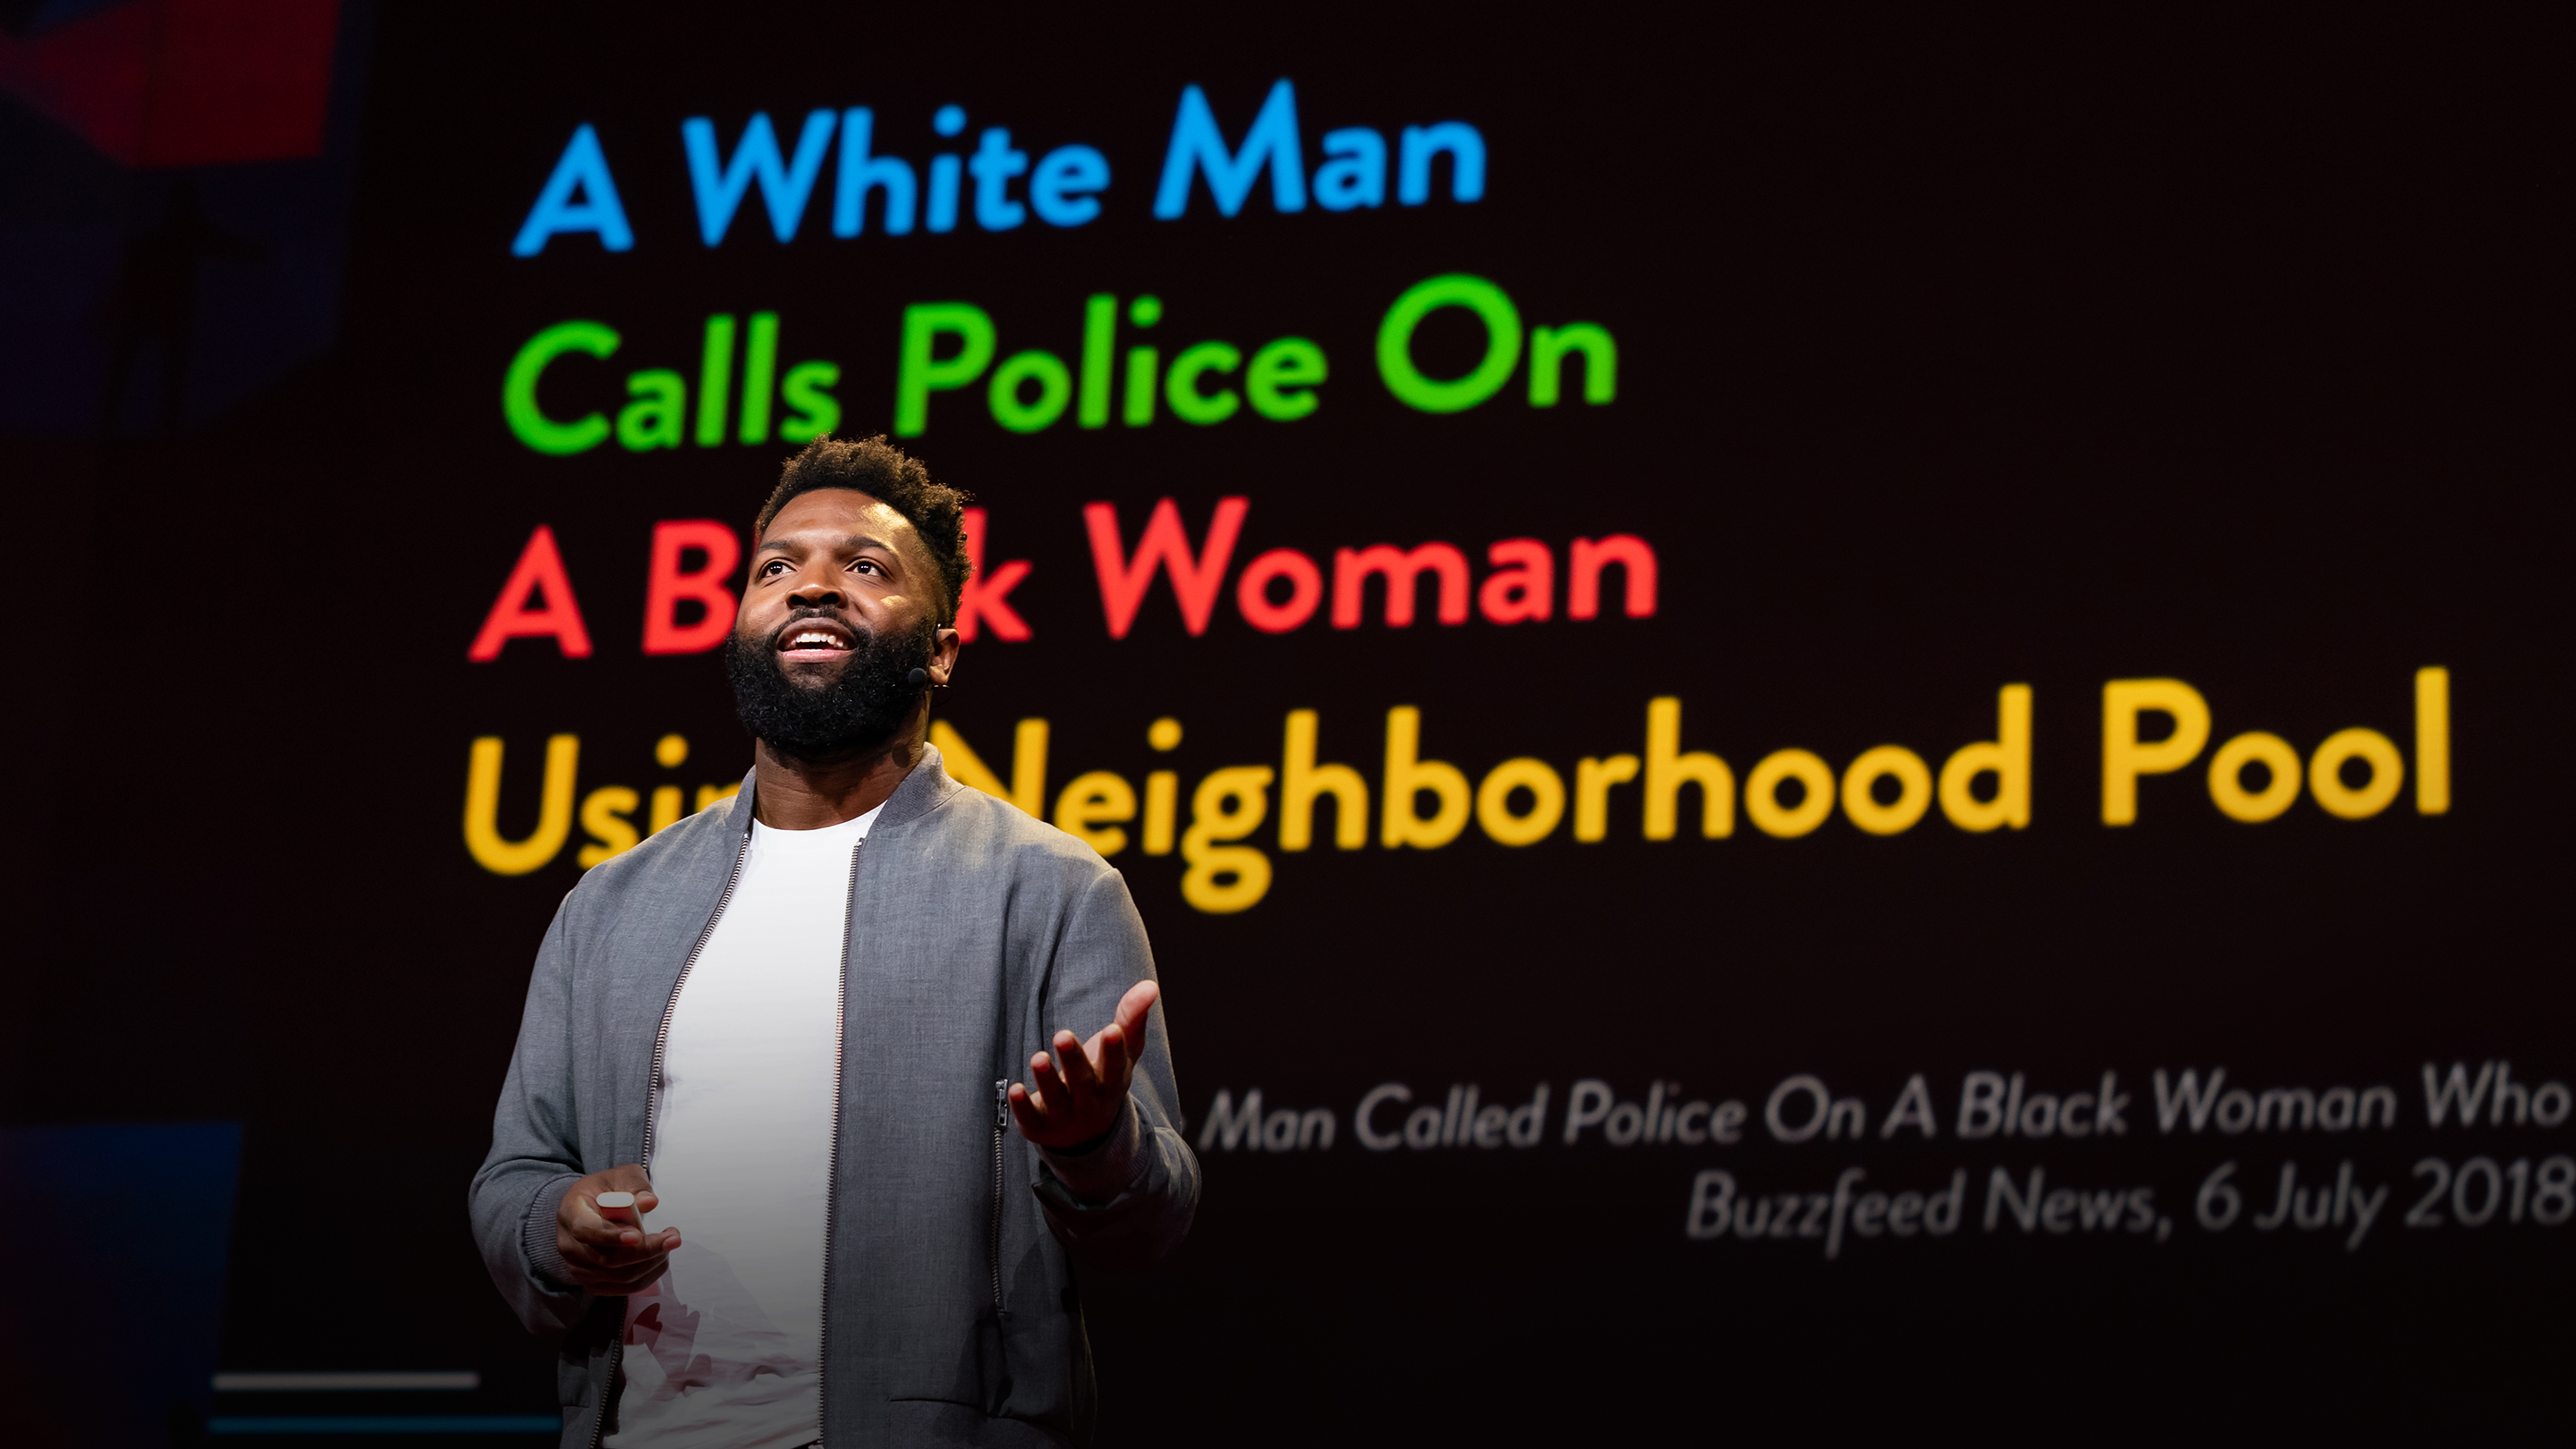 Friday Video: How to deconstruct racism, one headline at atime